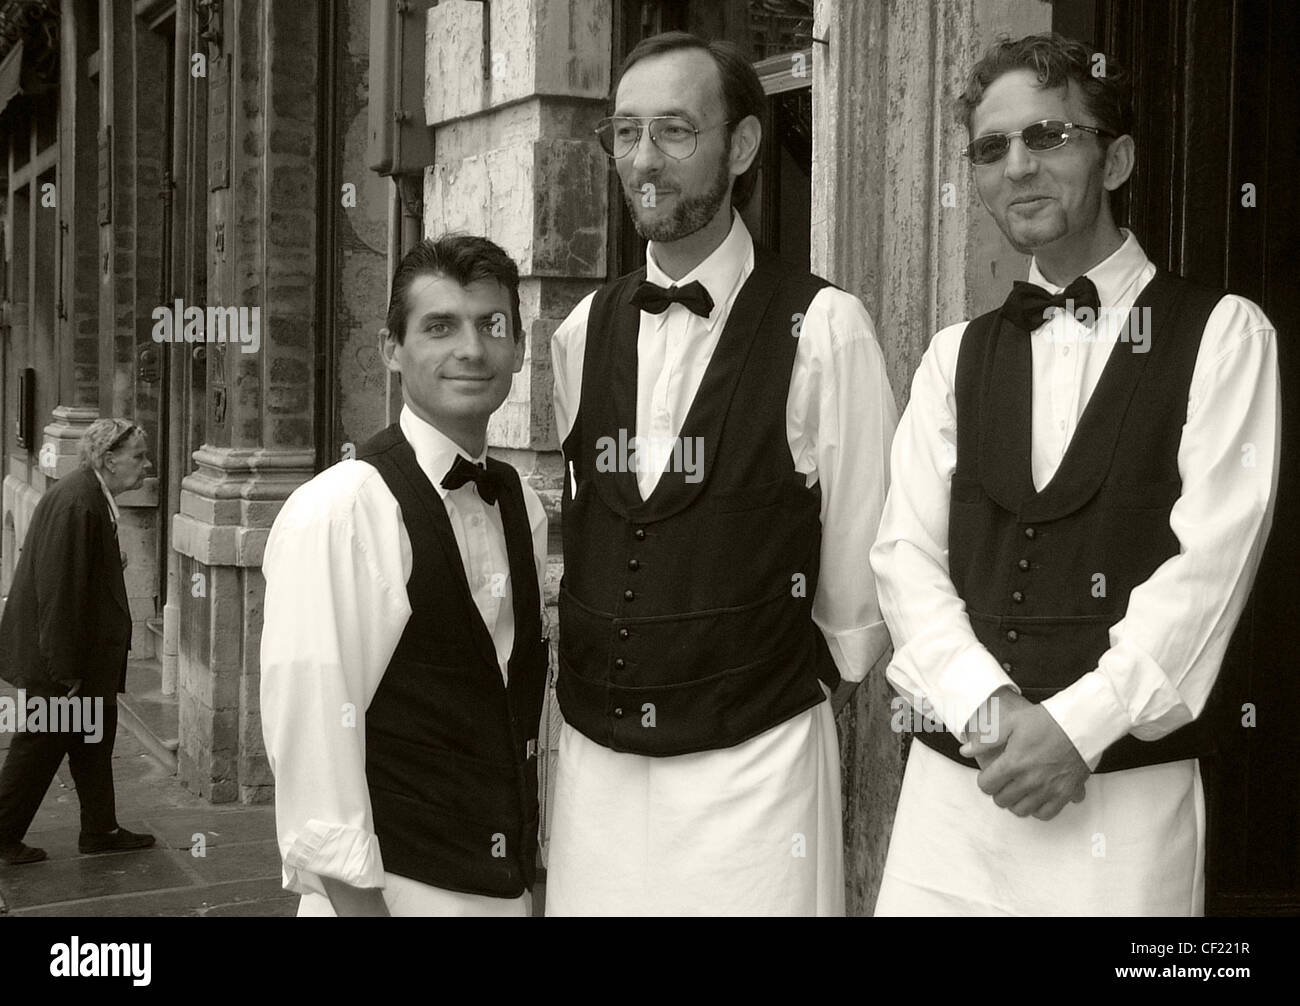 Three waiters of various sizes in B/W ( black and white) - Stock Image